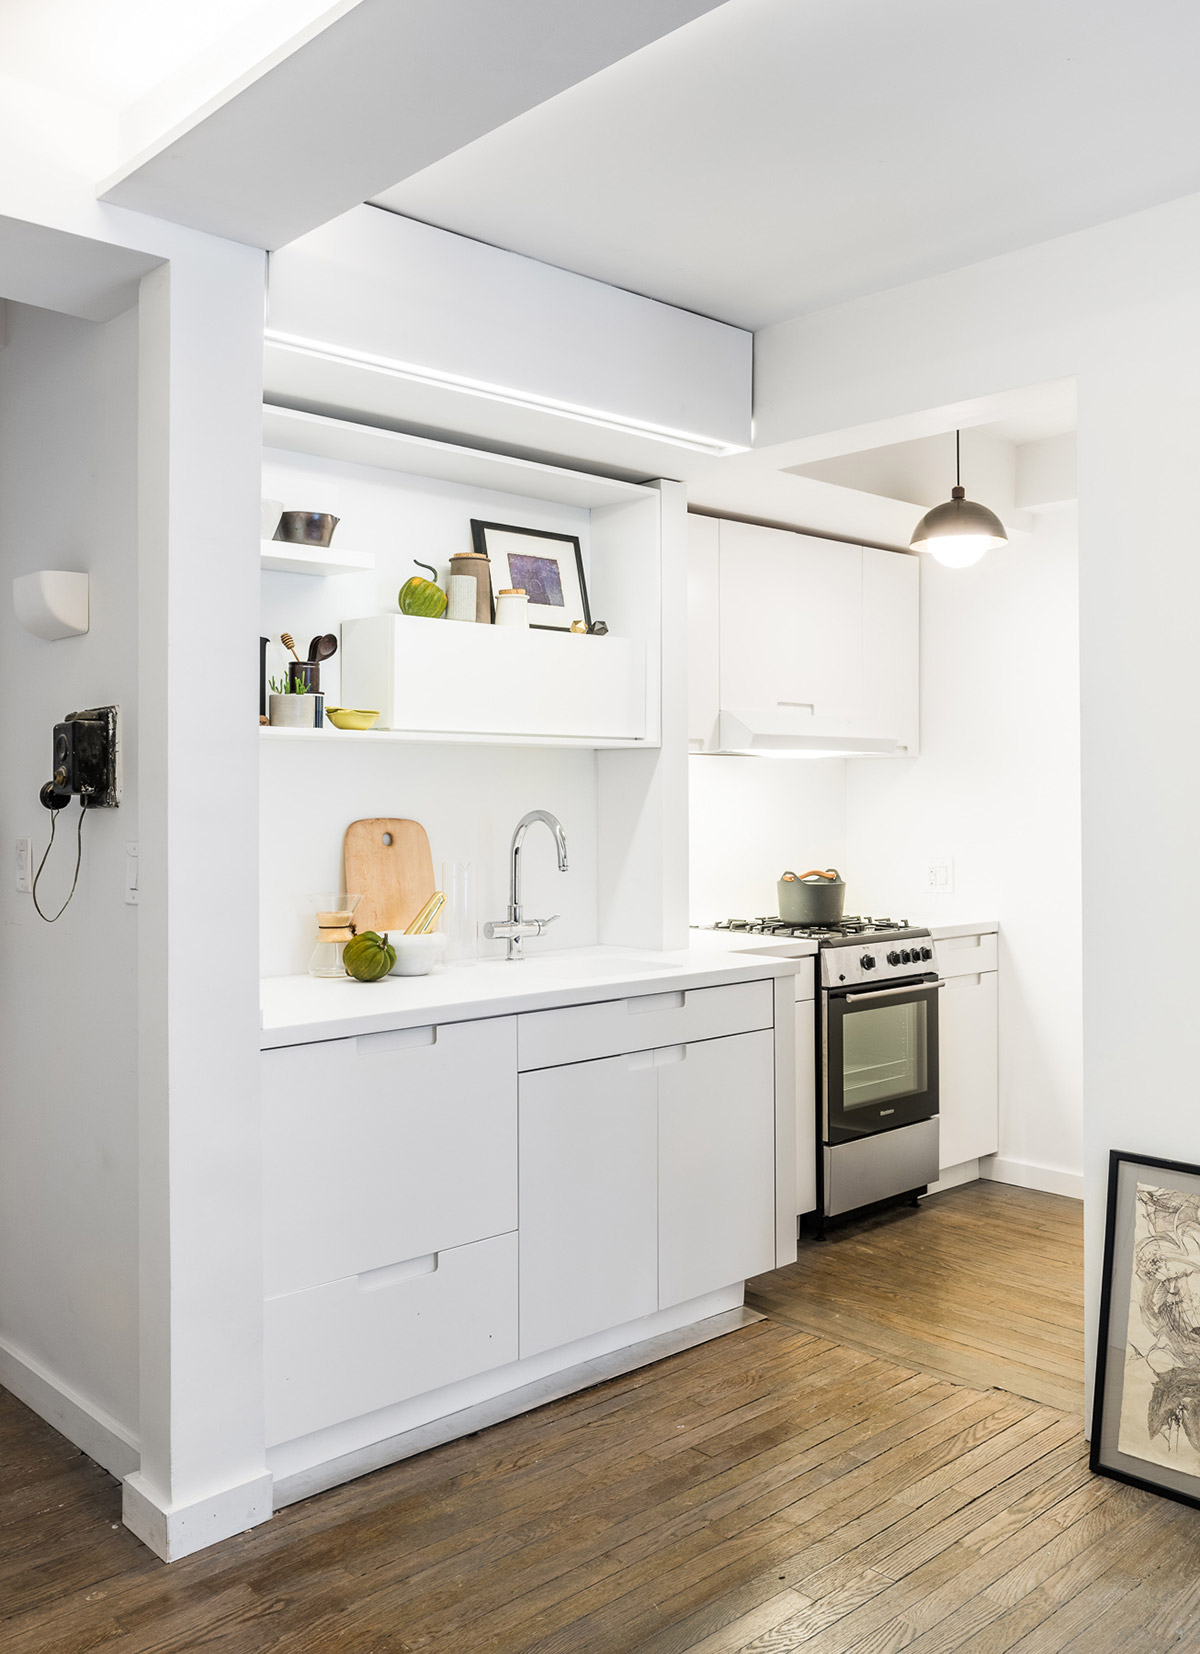 12 Splendid Small Kitchens And Ideas You Can Use From Them